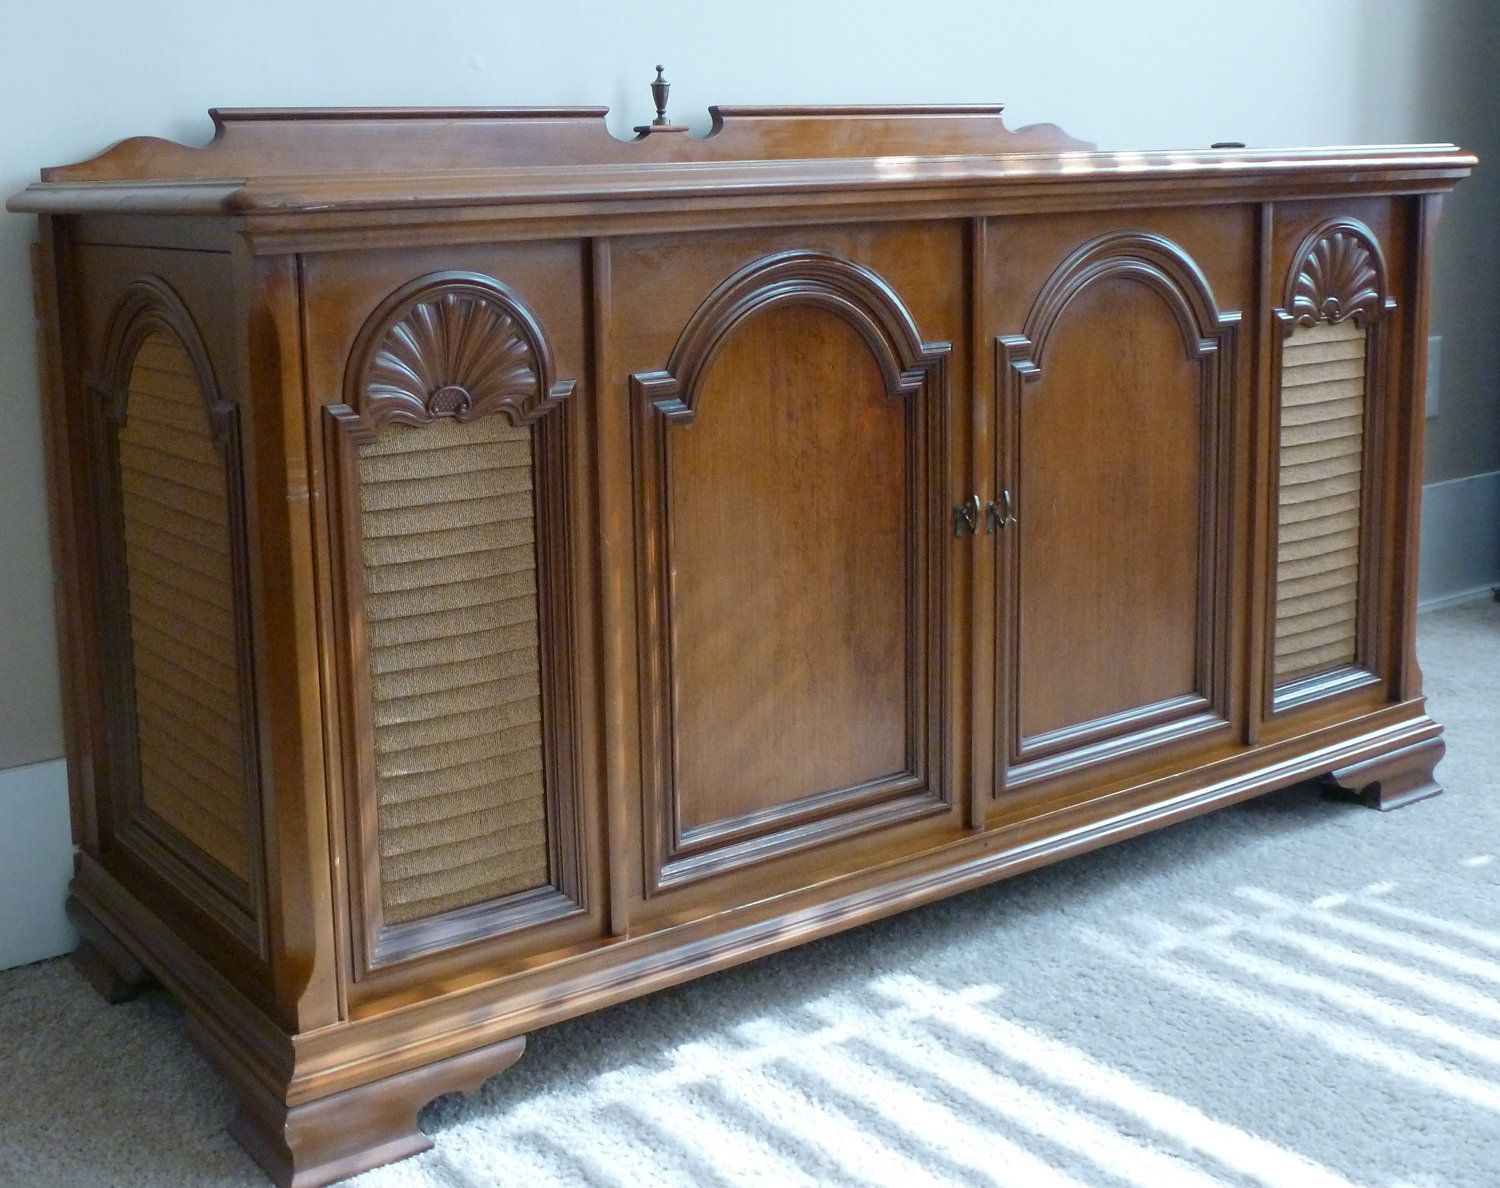 Cabinet Record Player 1969 Magnavox Vintage Record Player Stereo Console Vintage Radio